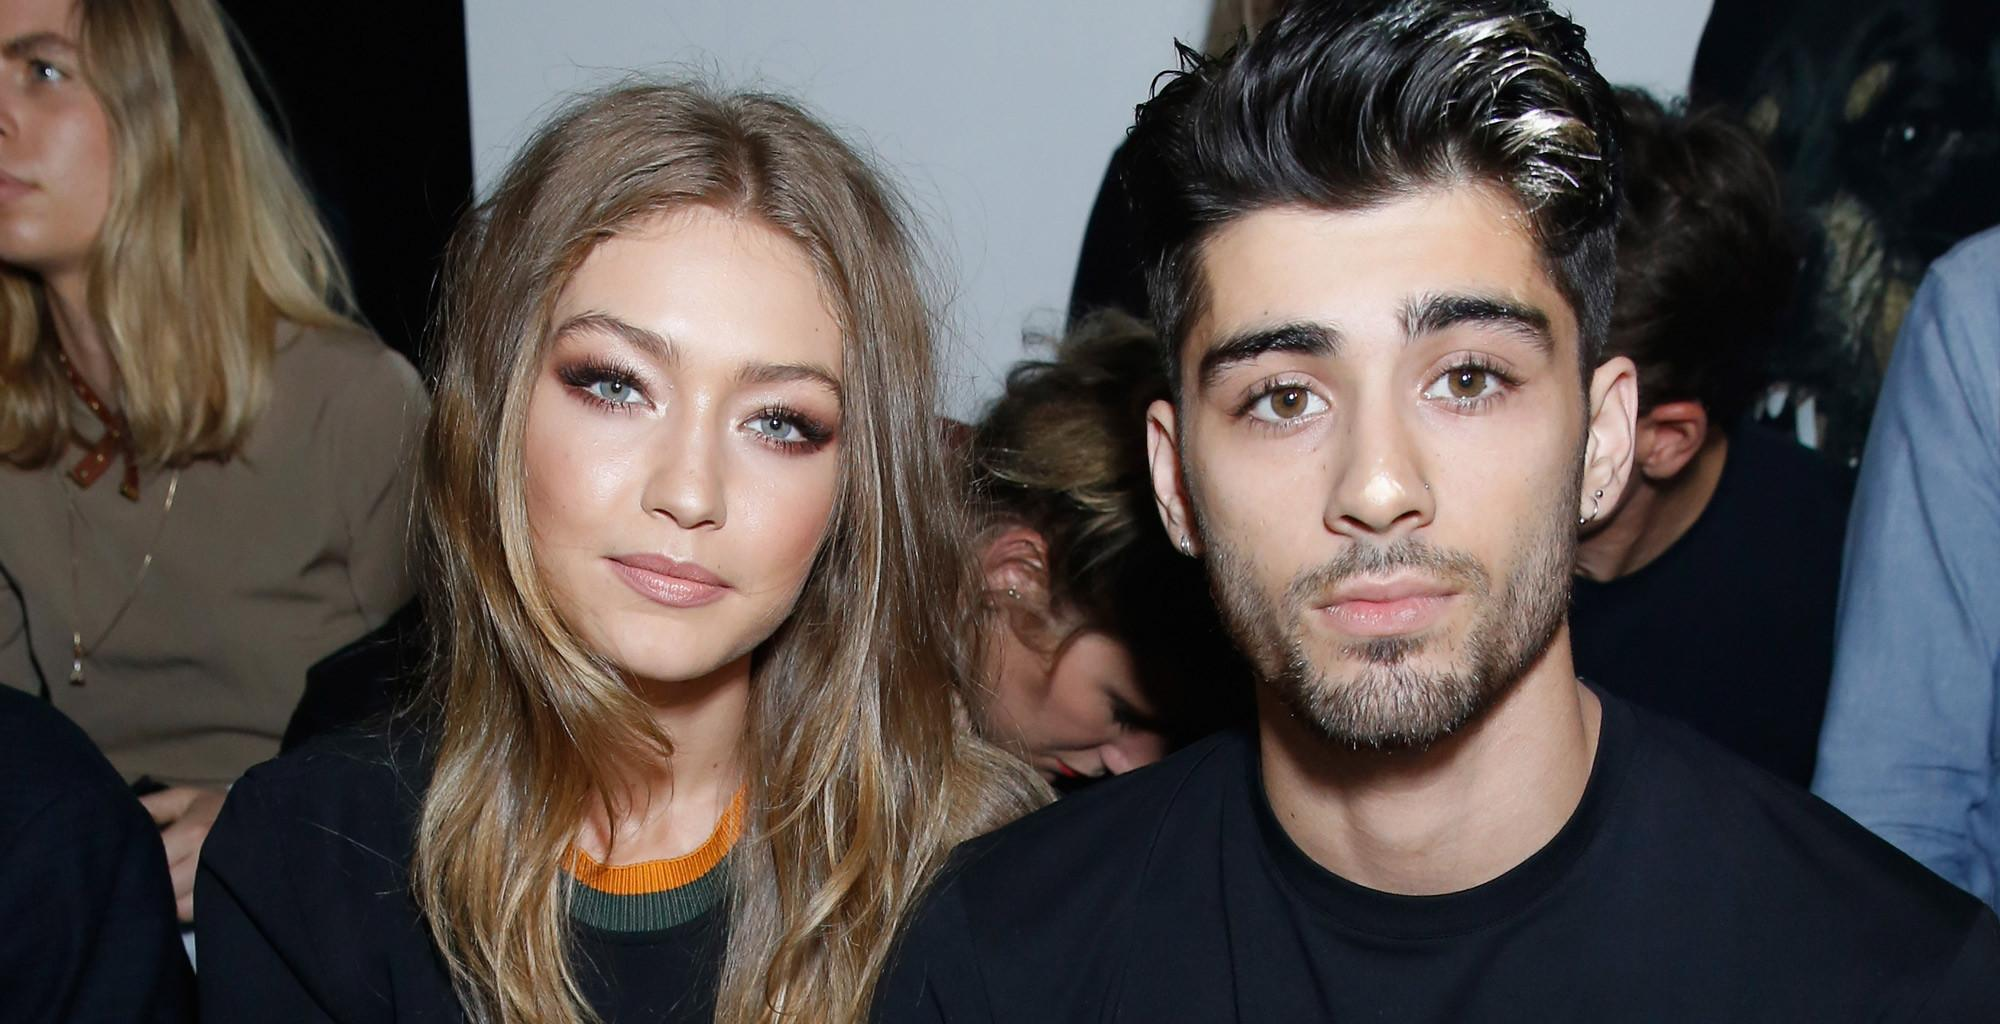 Zayn Malik And Gigi Hadid Fans Are Convinced They're Already Engaged After Seeing His New Tattoo!